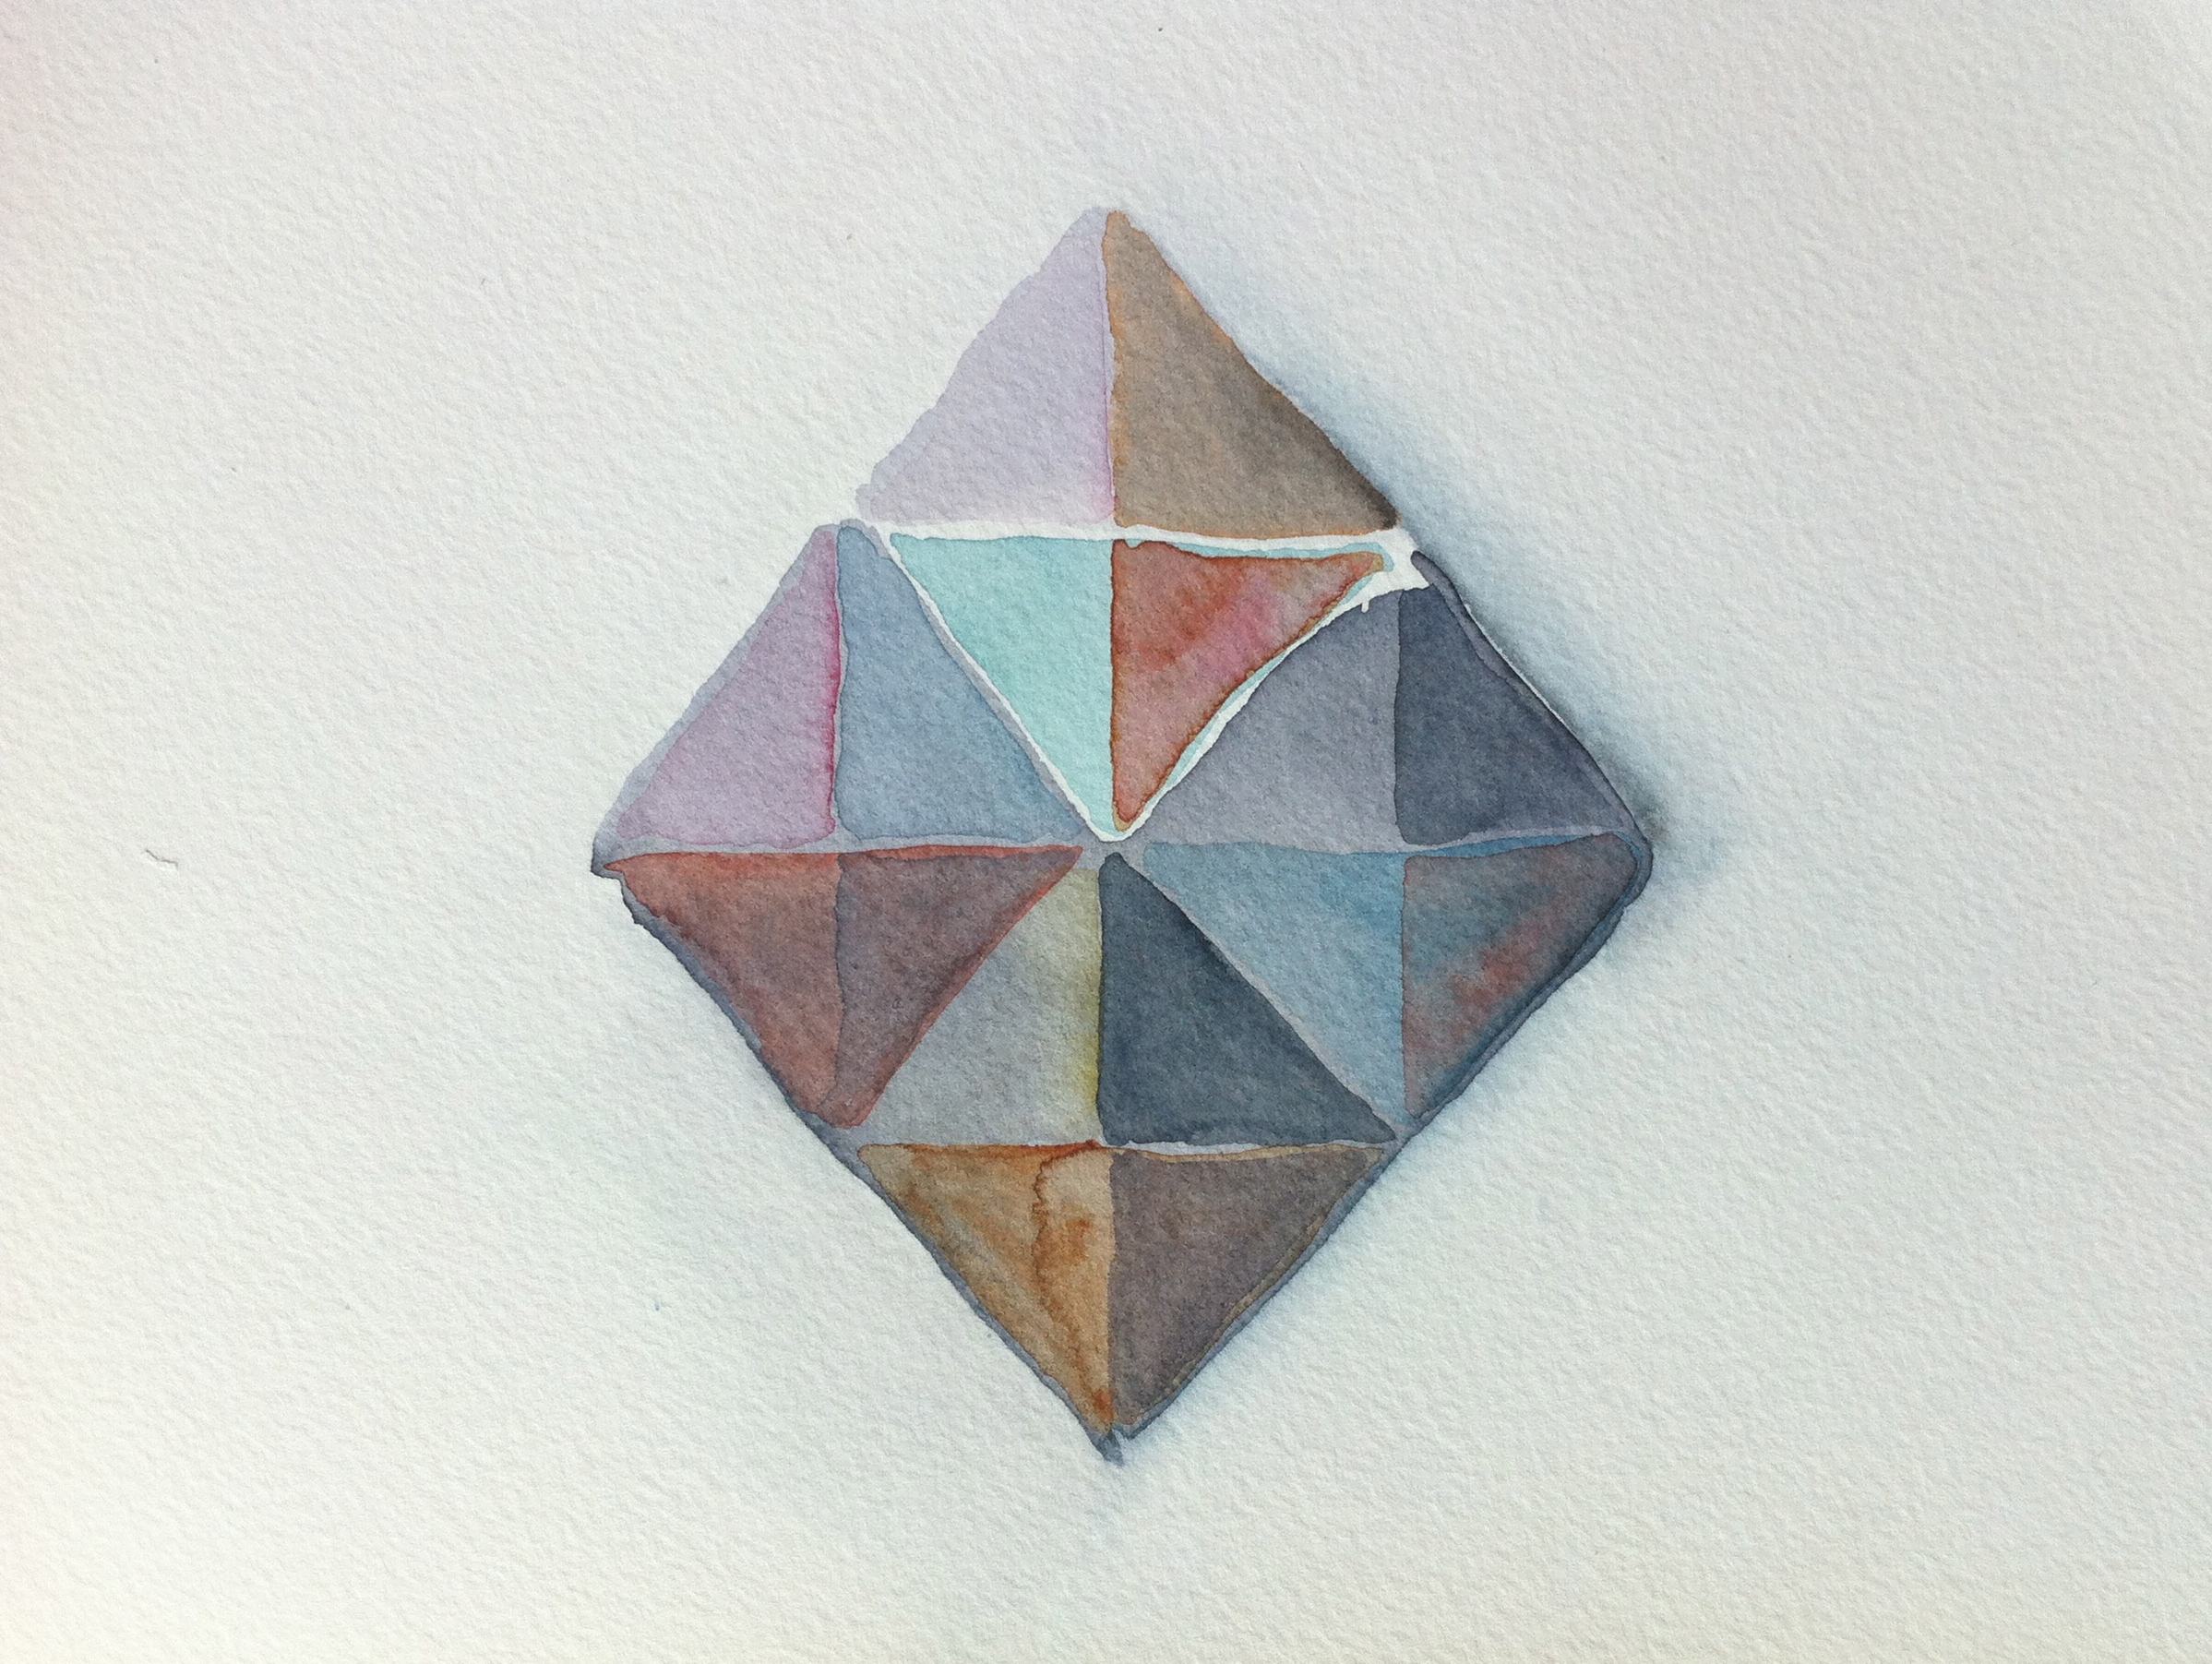 color study pyramid II